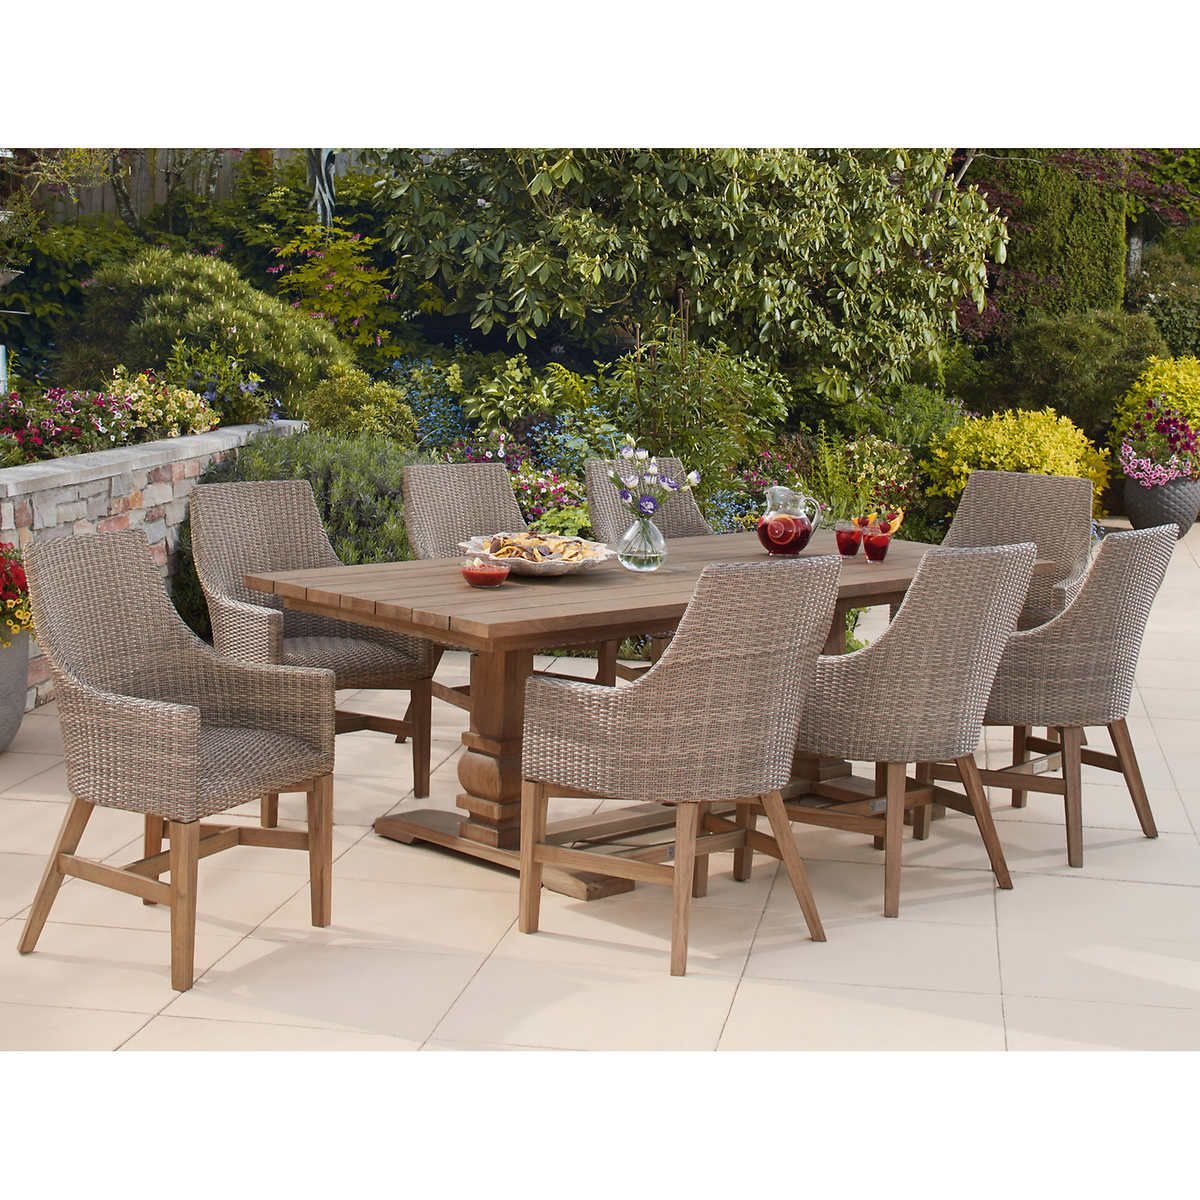 Pin By Laura Radle On Pool Teak Patio Furniture Backyard Furniture Patio Decor